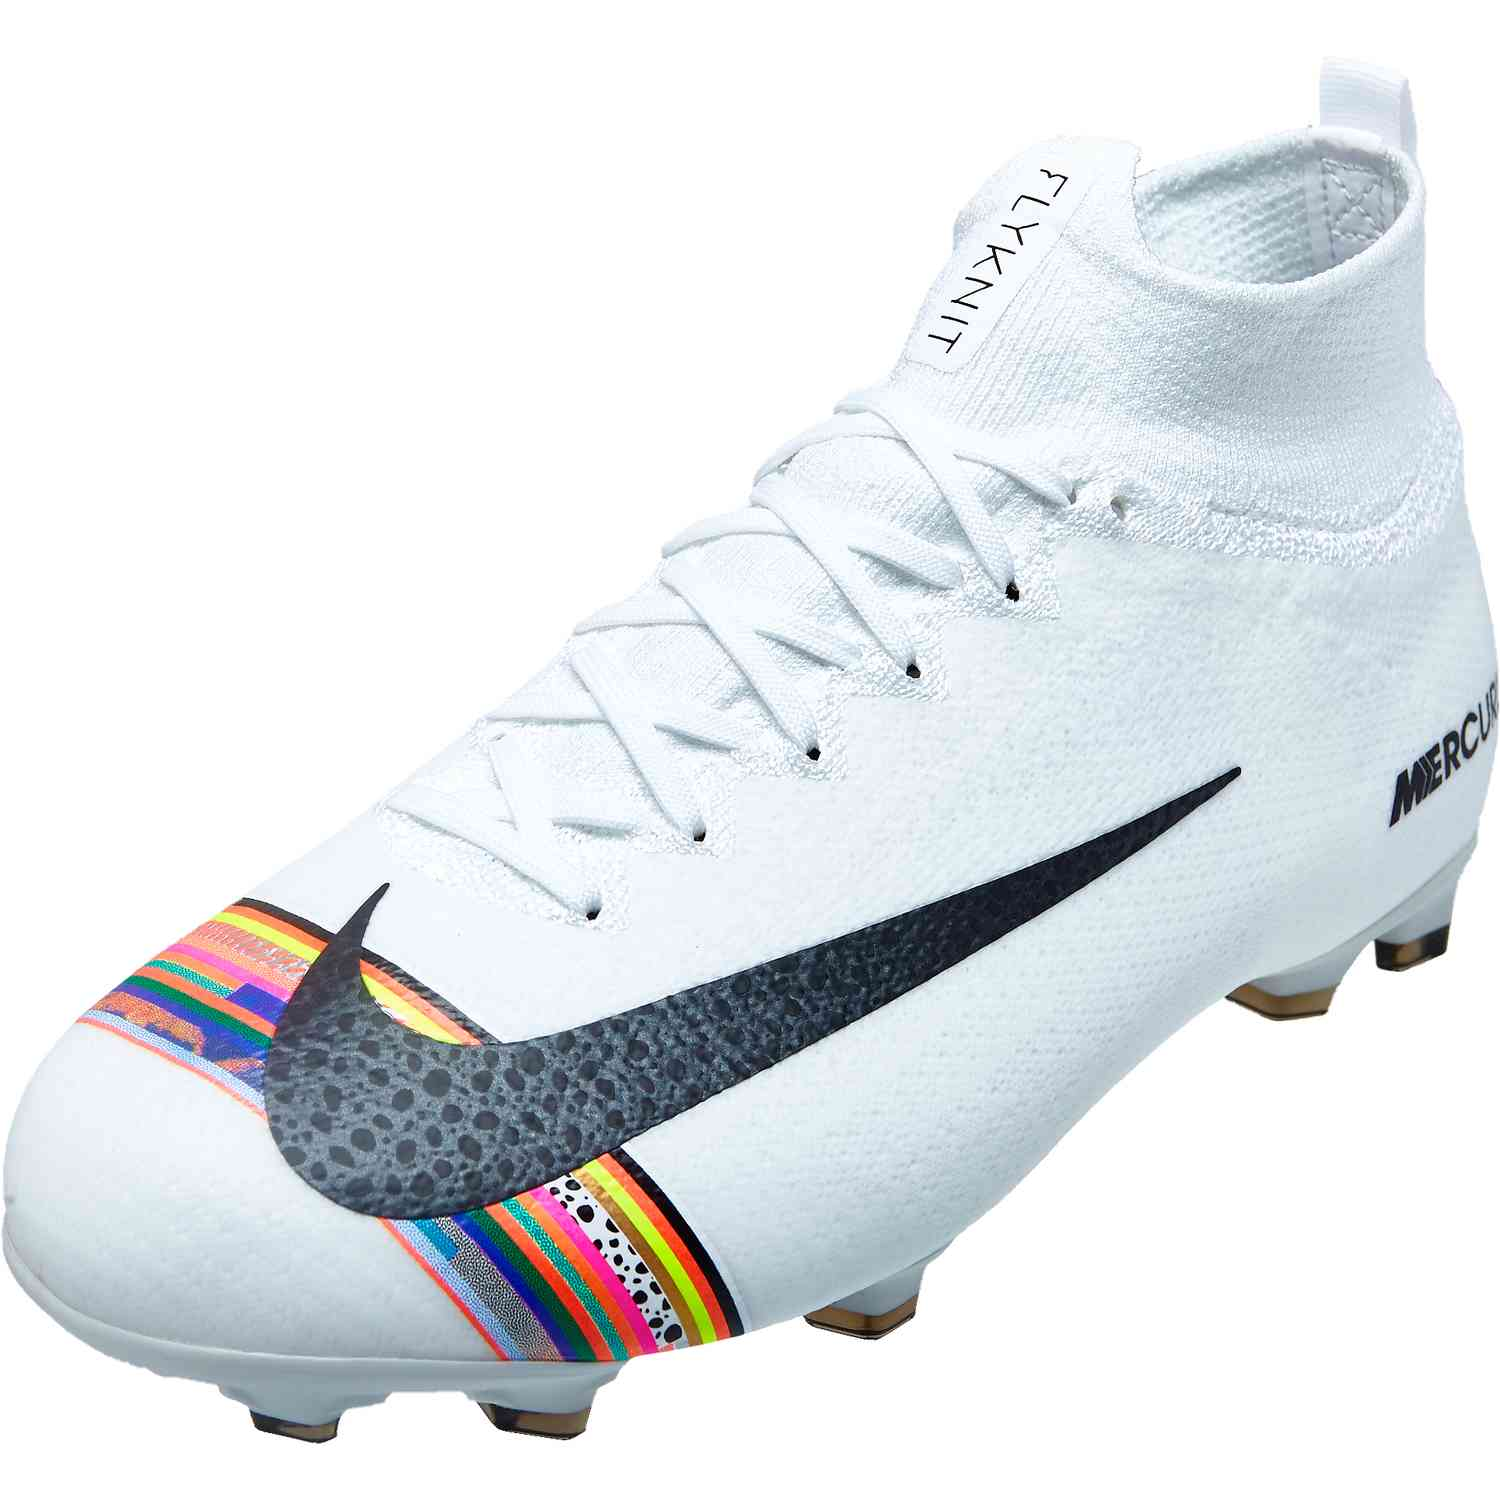 c0ef550eb6c4 Kids Nike Mercurial Superfly 6 Elite FG - Level Up - Soccer Master